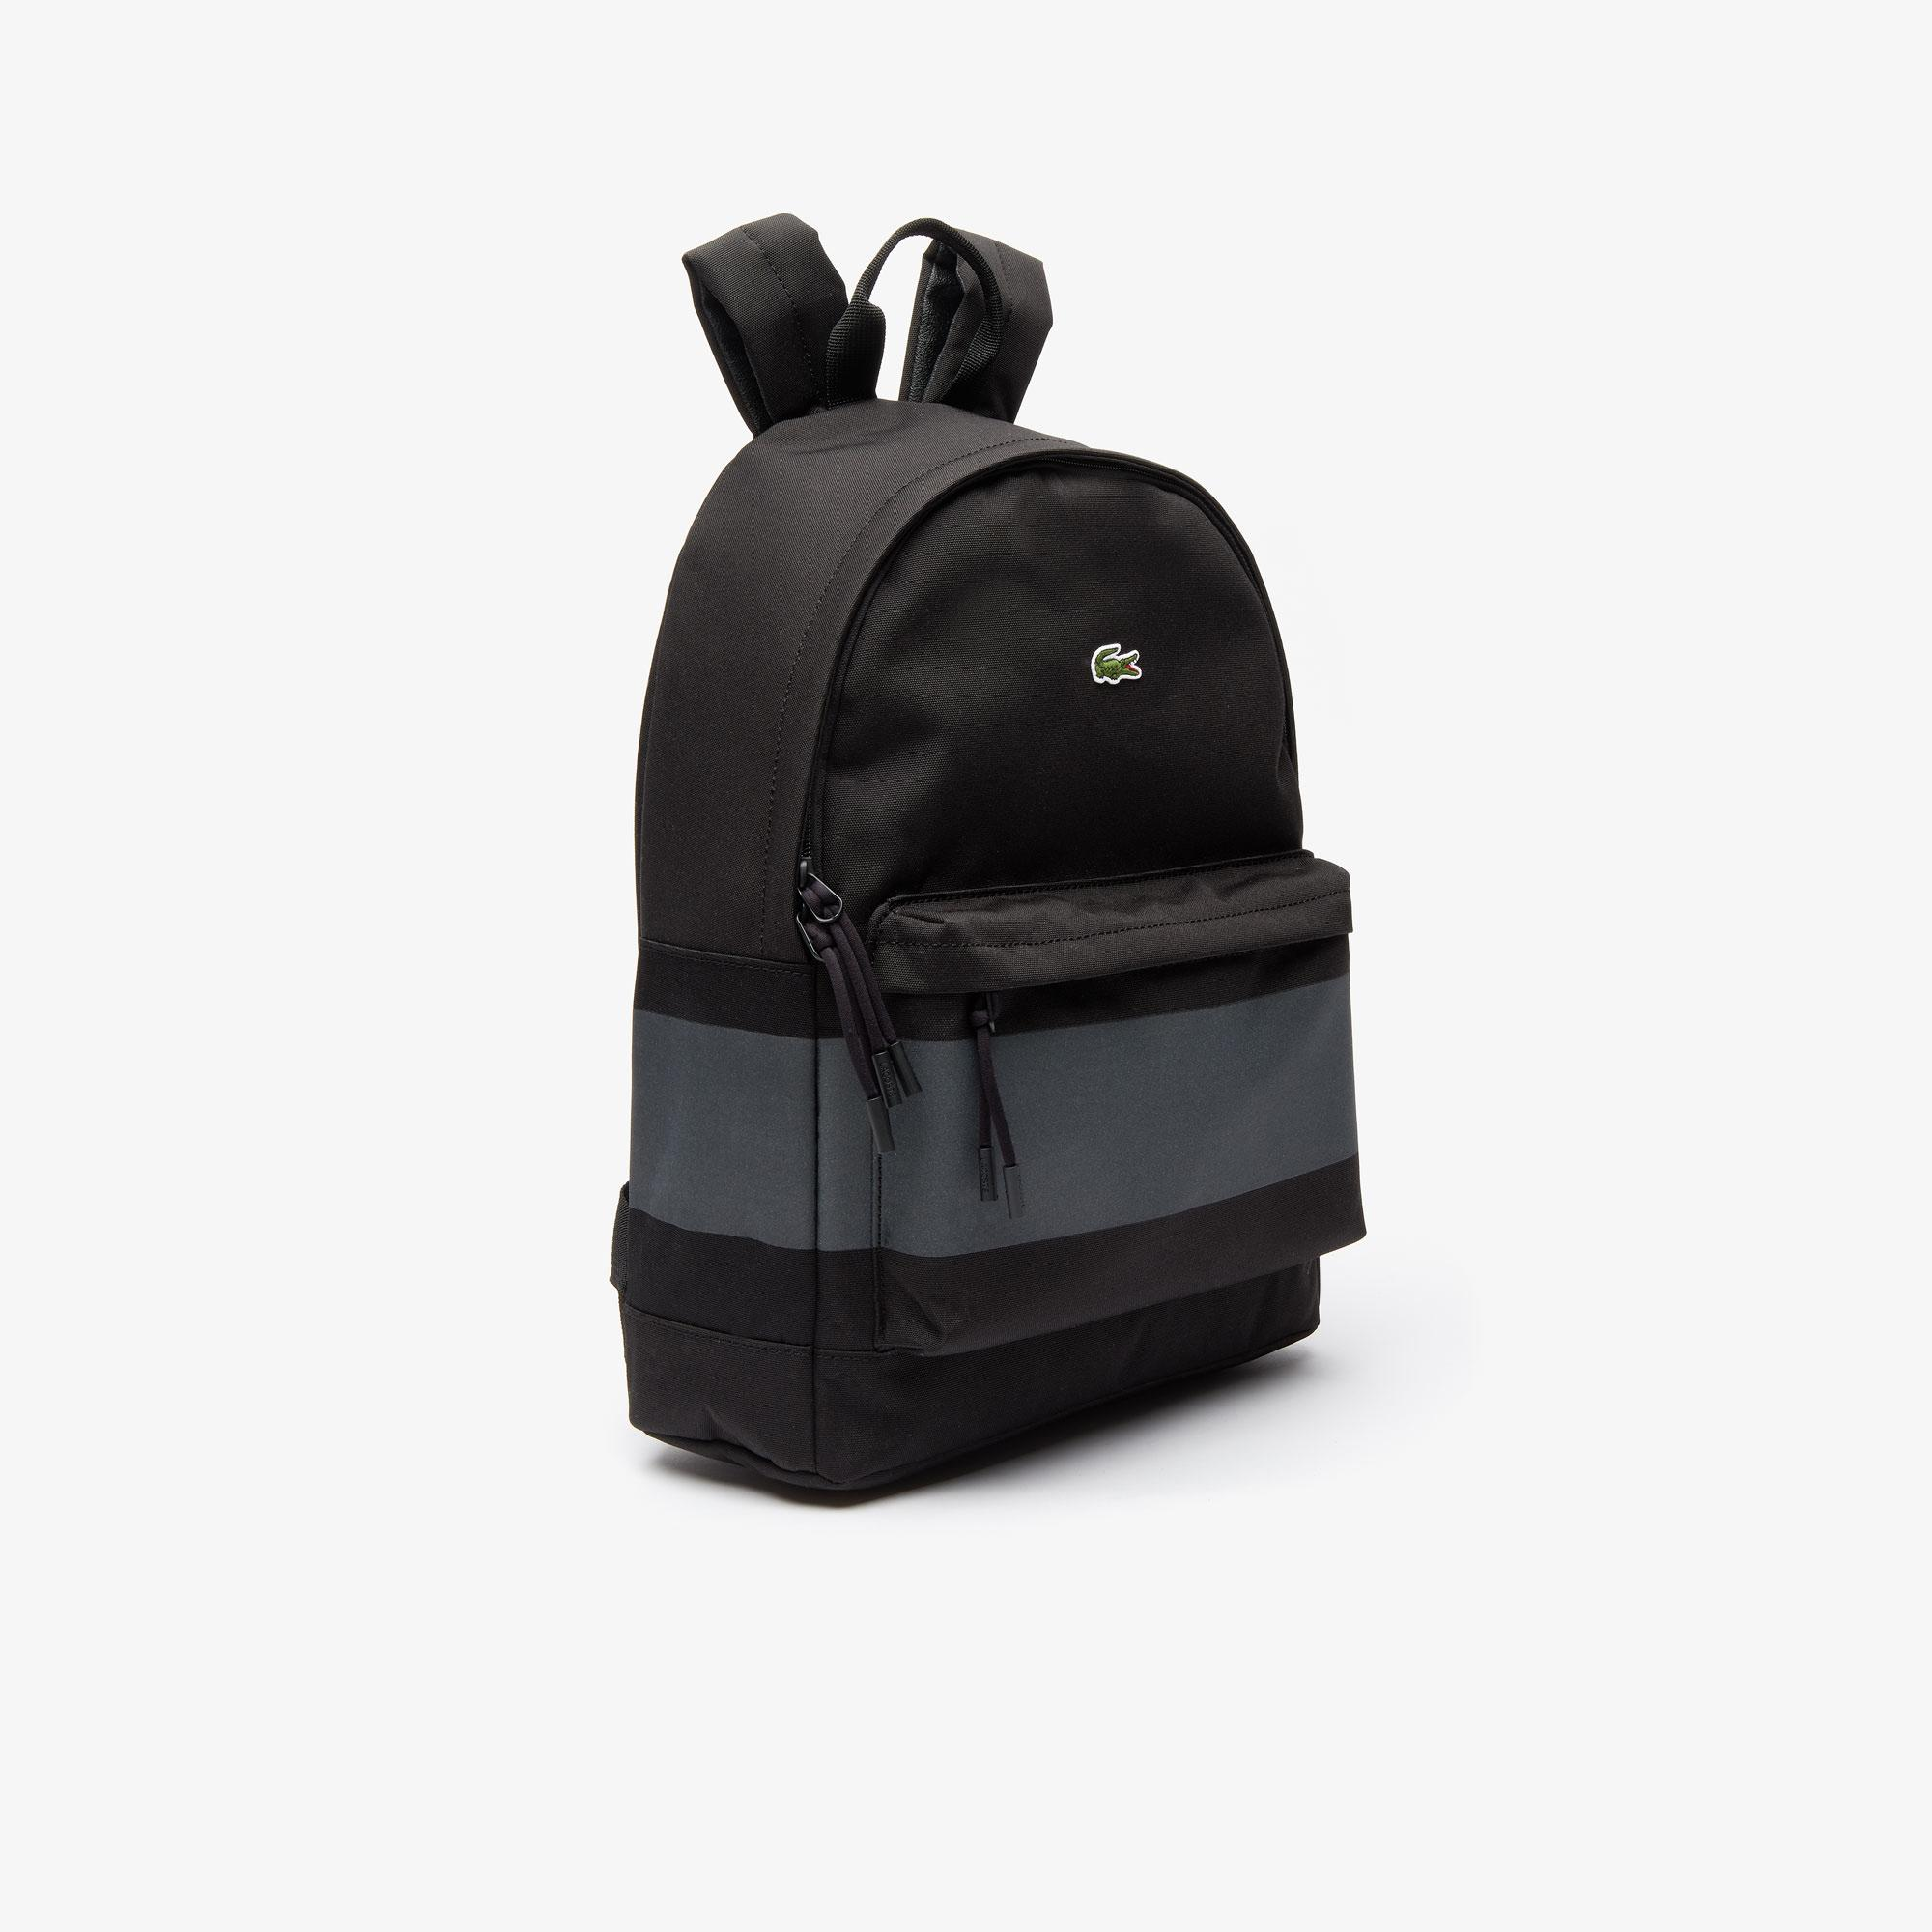 Lacoste Men's Neocroc Reflective Band Canvas Zippered Backpack